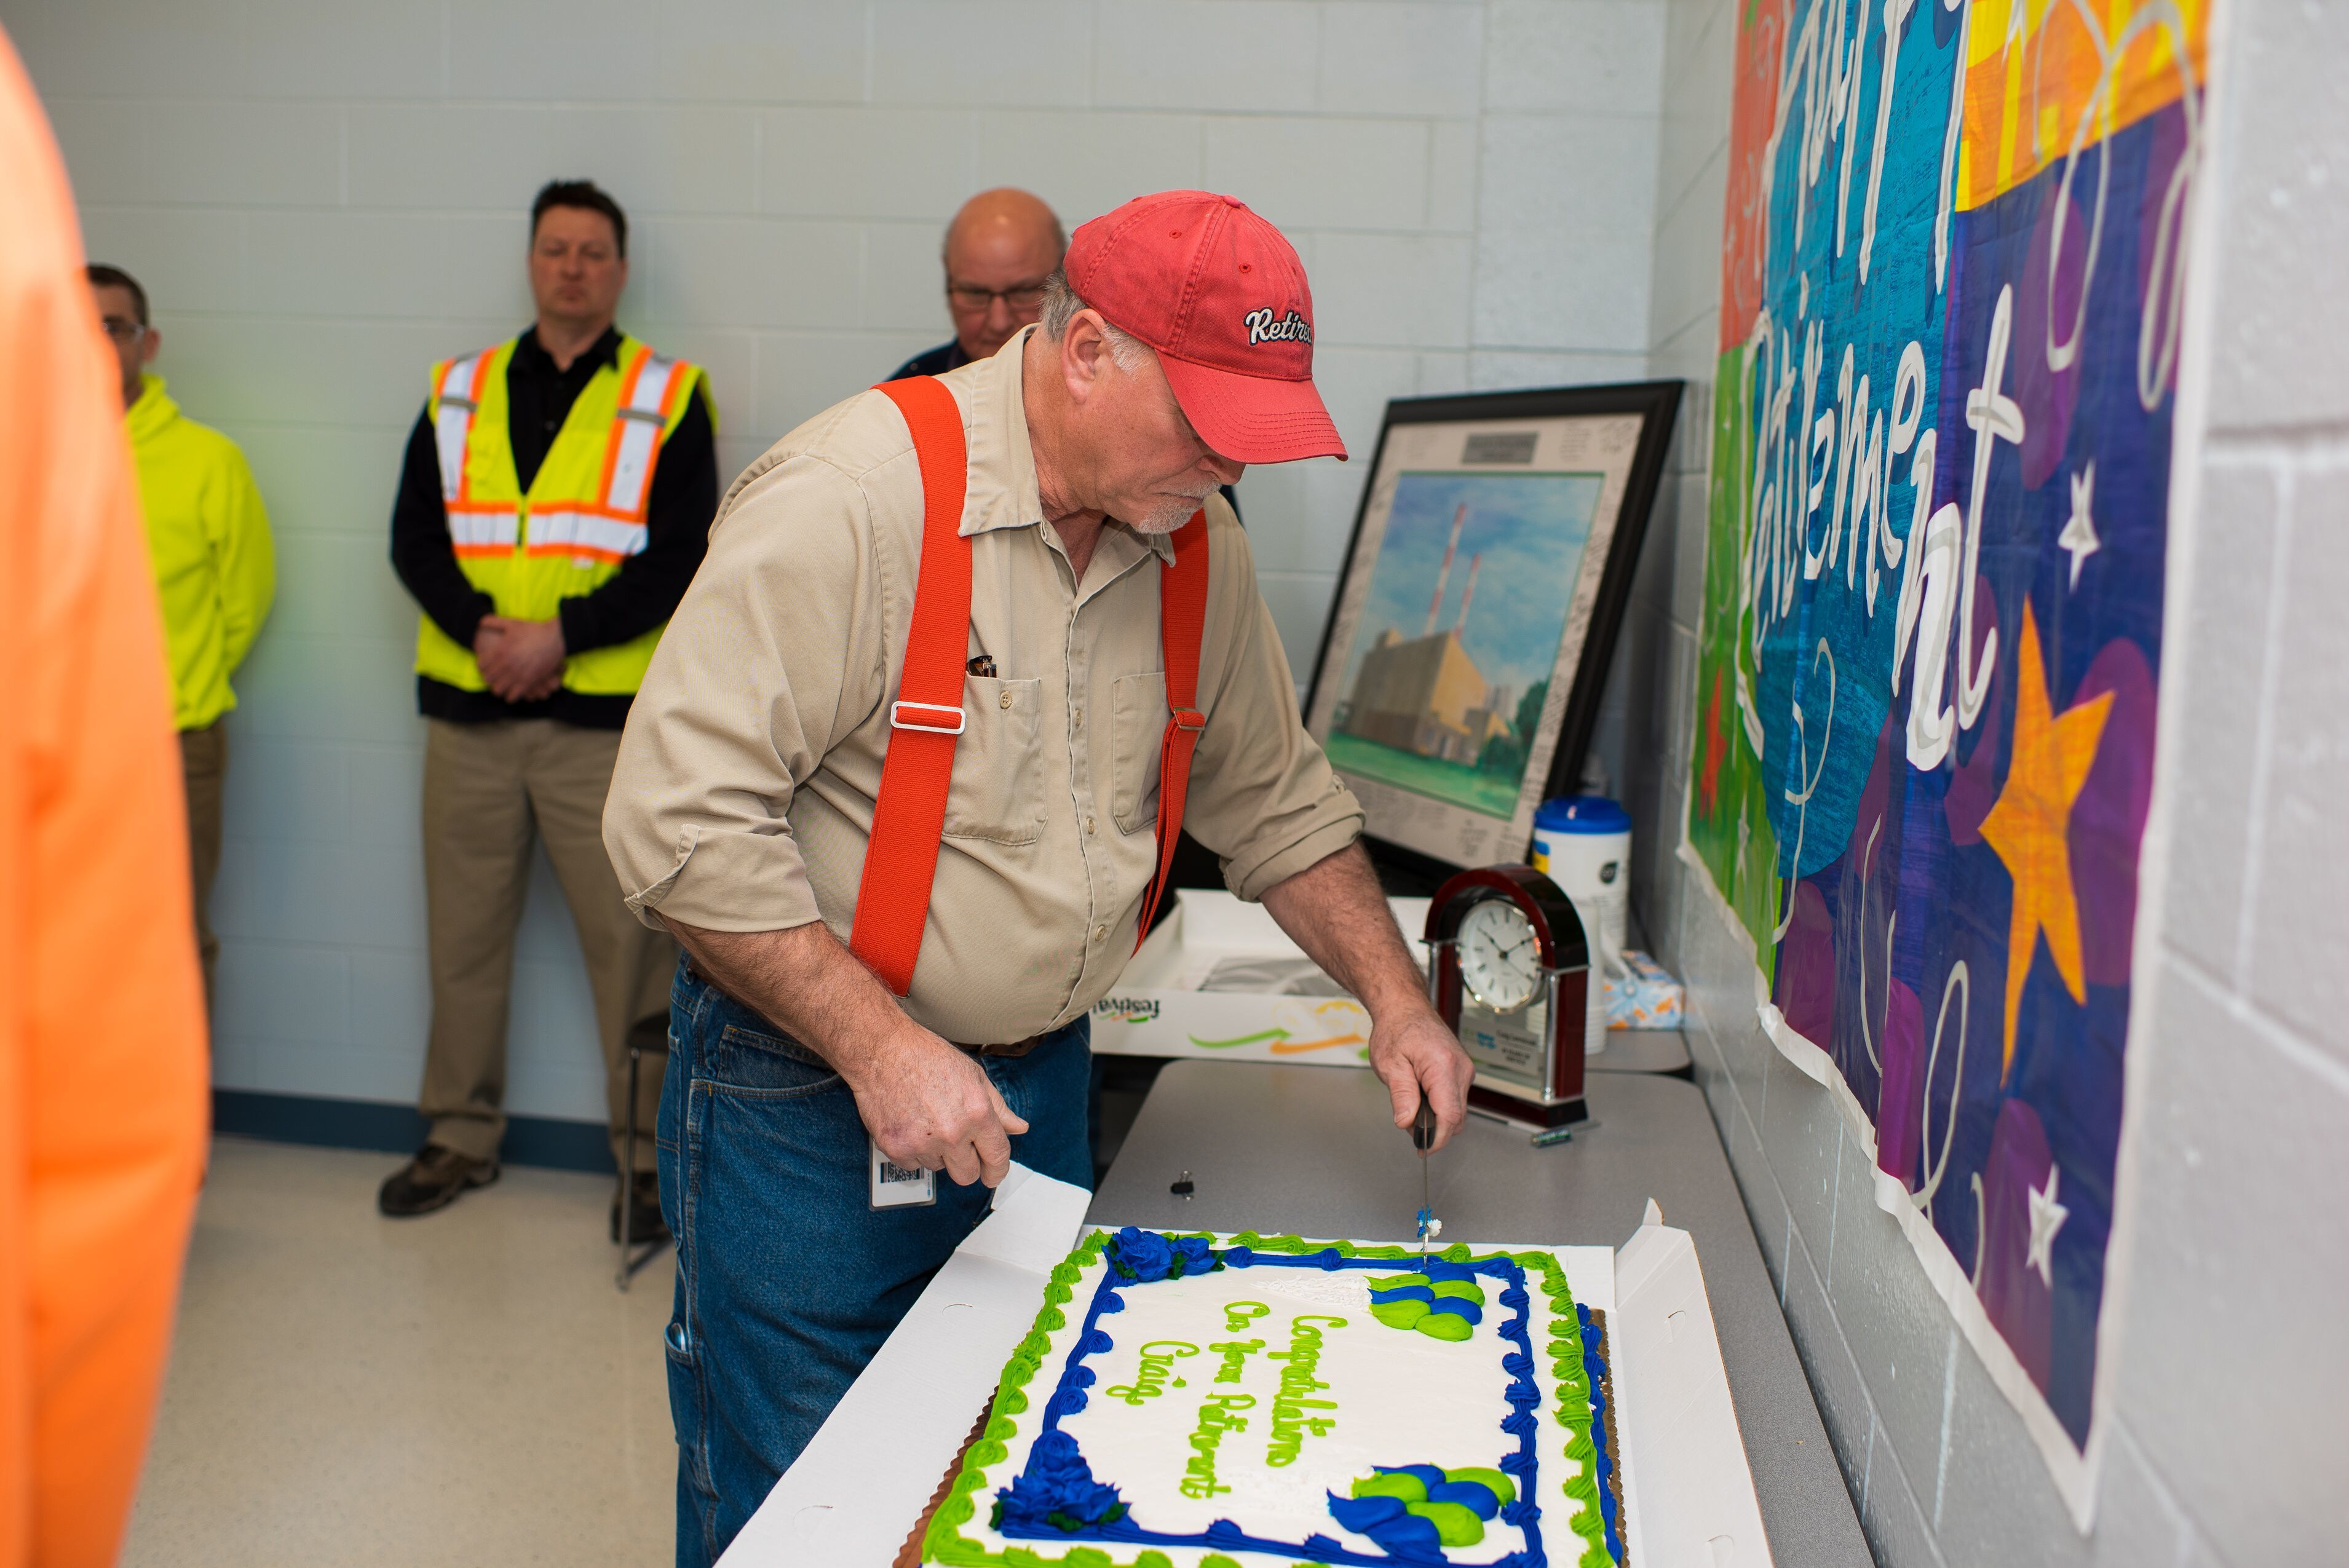 Craig Lawniczak cutting the cake at his retirement party.